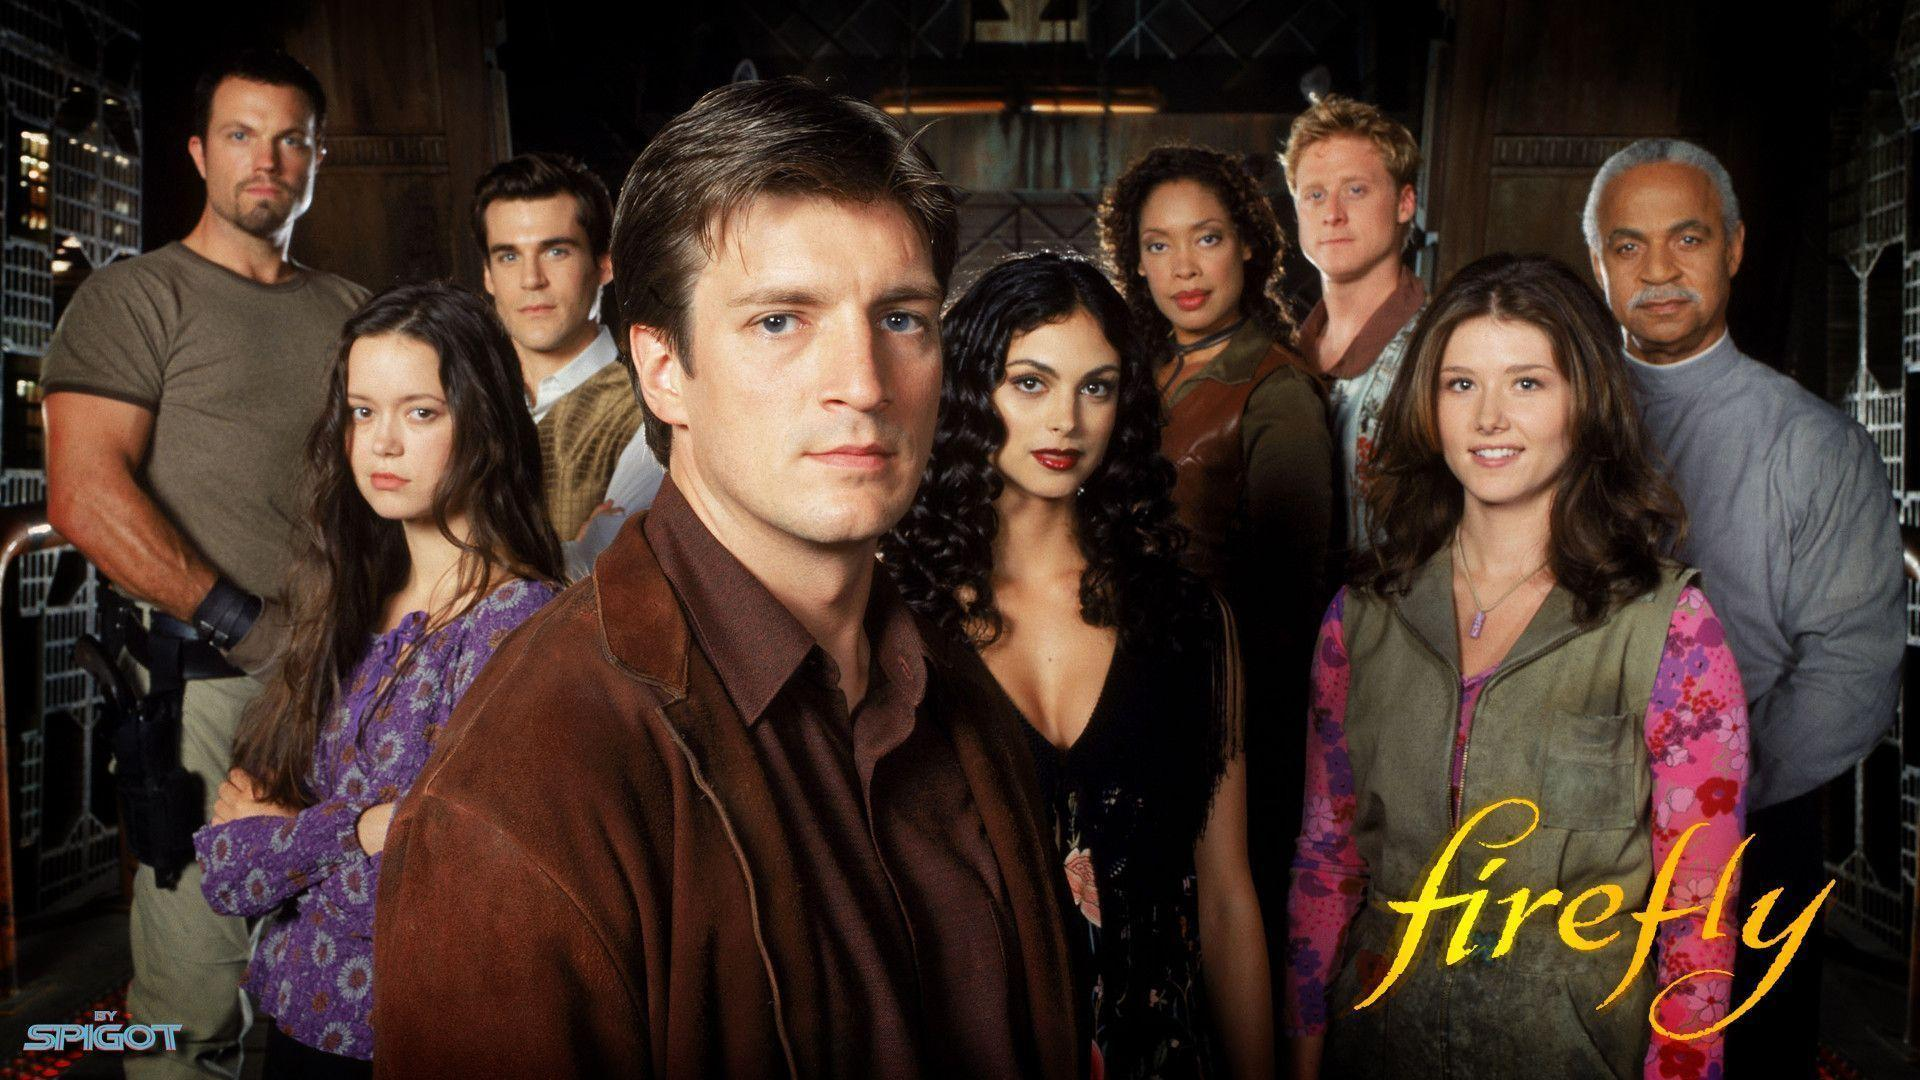 Firefly Wallpaper | George Spigot's Blog